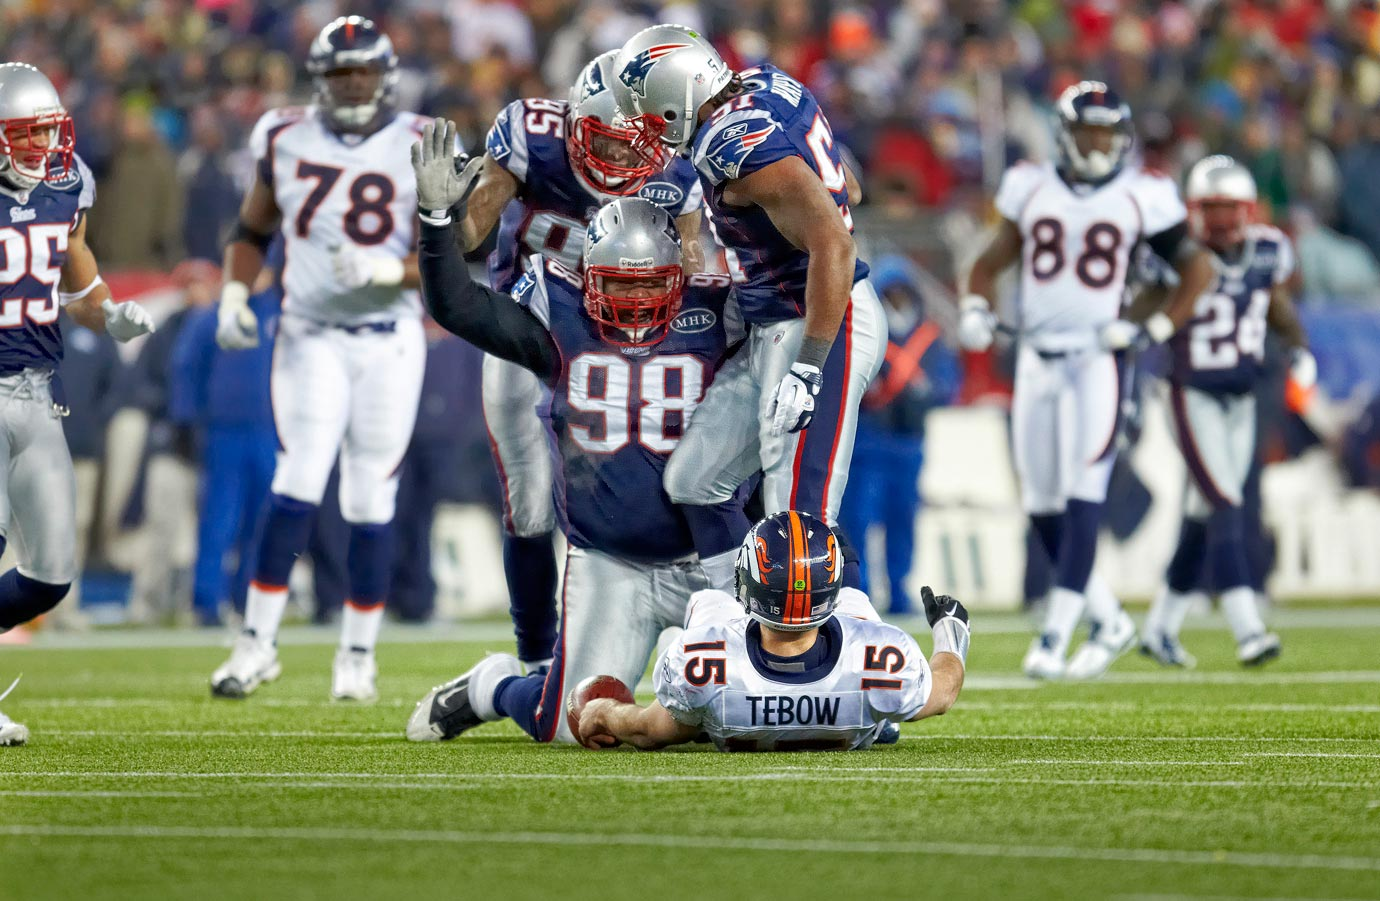 In what would turn out to be Tim Tebow's final game with the Broncos, the Patriots put his dream season to a nightmare end. In a 45-10 blowout loss, Tebow completed just 9 of 26 passes for 126 yards against a stifling Patriots defense.